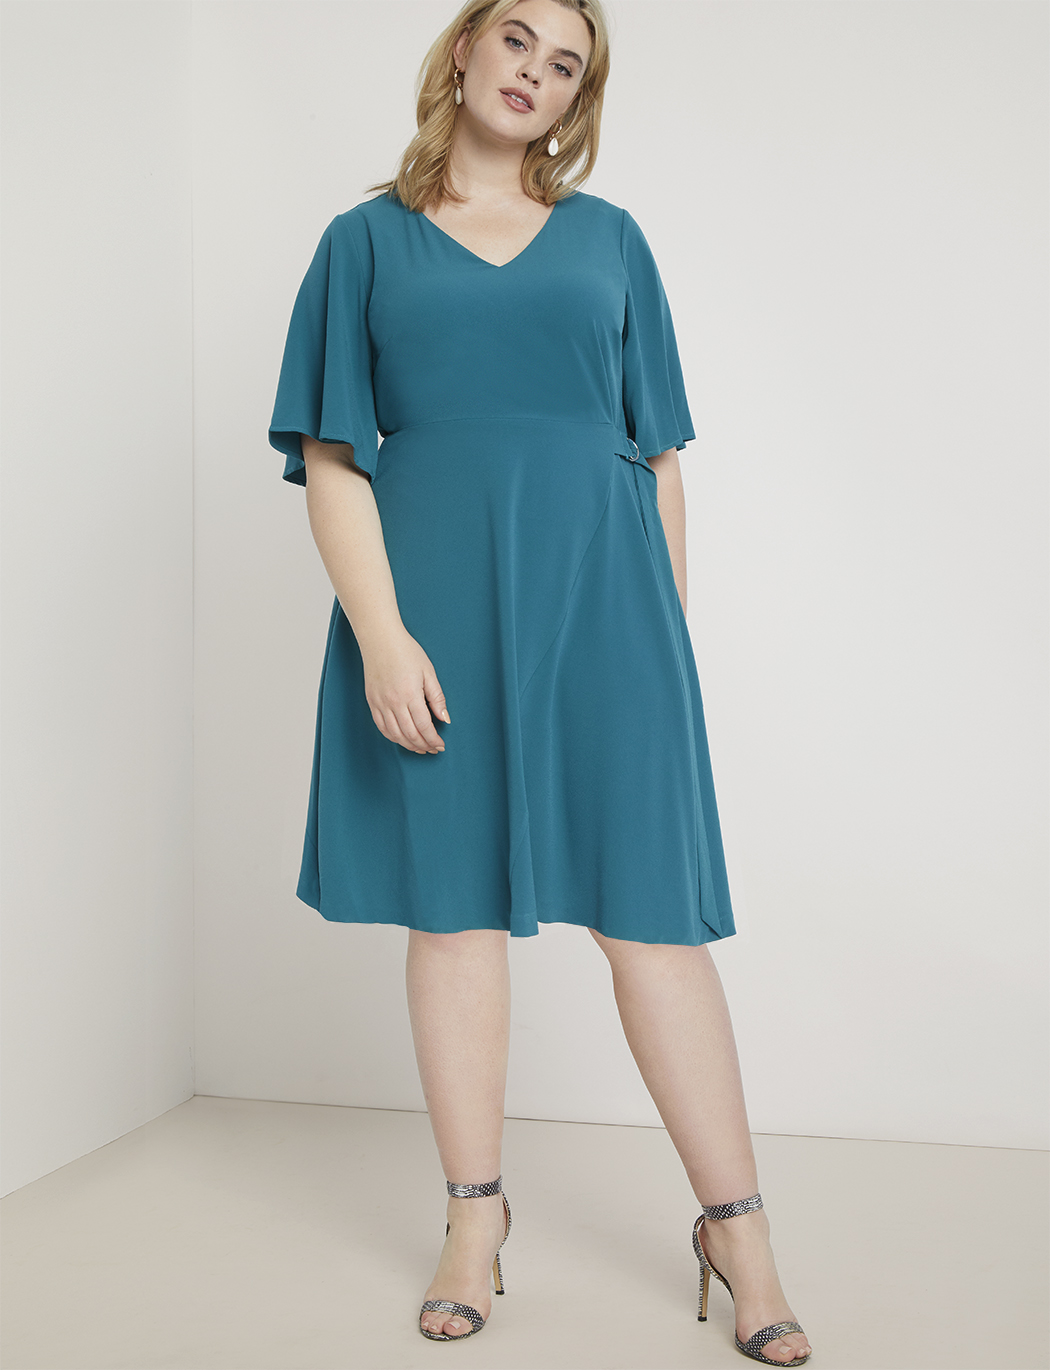 Flutter Sleeve A-Line Dress